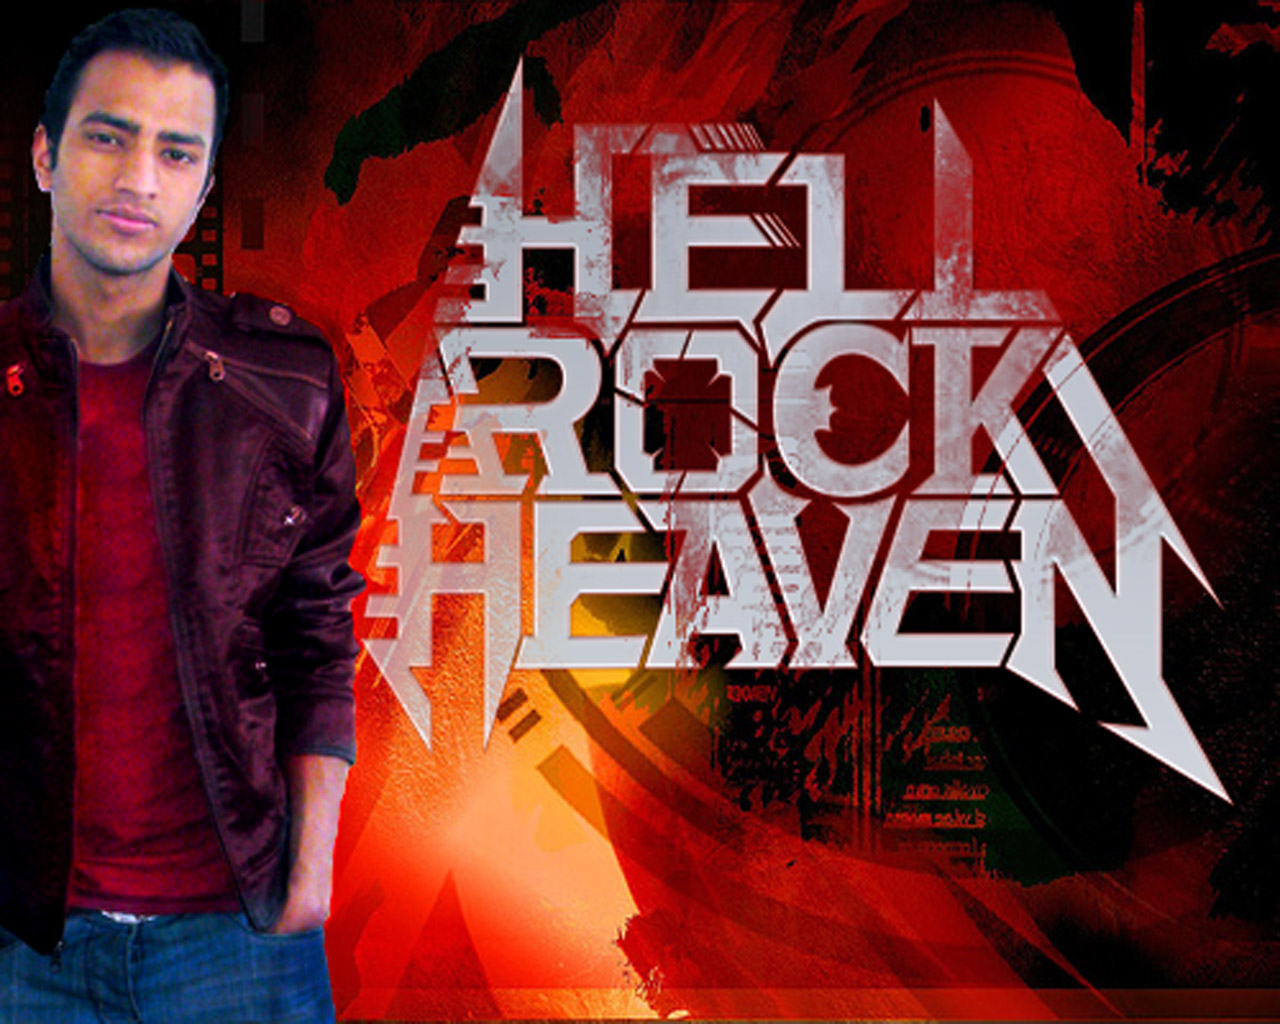 Hell Rock Heaven - Anup Panthi - Lead Guiatrist (H.R.H)